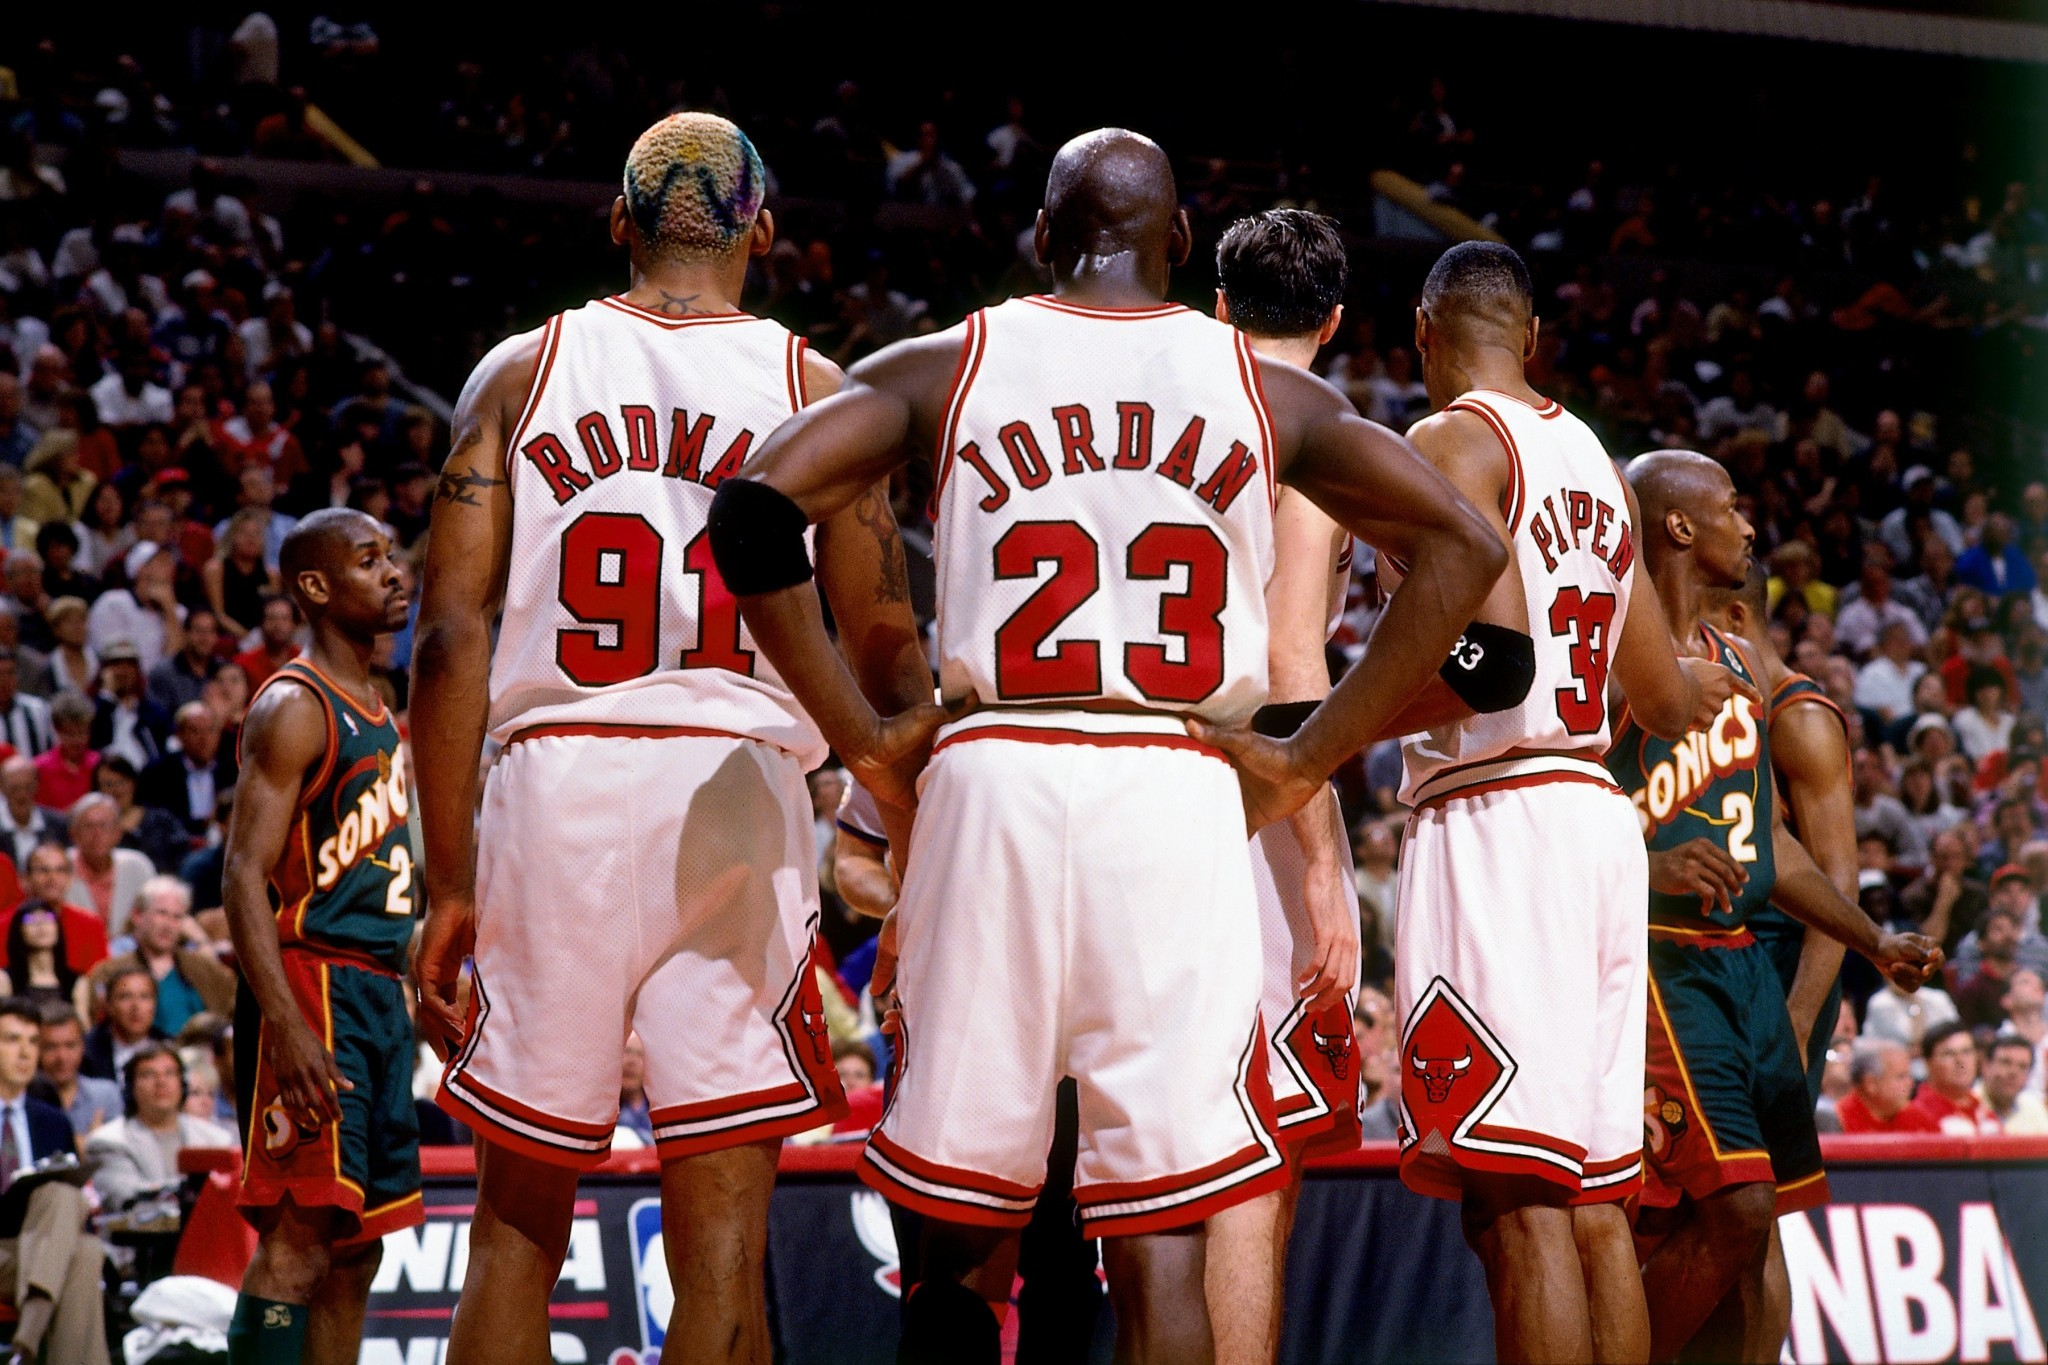 f0a831fcef36 1996-06-16 0 Gm 6 v SEA - 1996 NBA Finals - Michael. ""